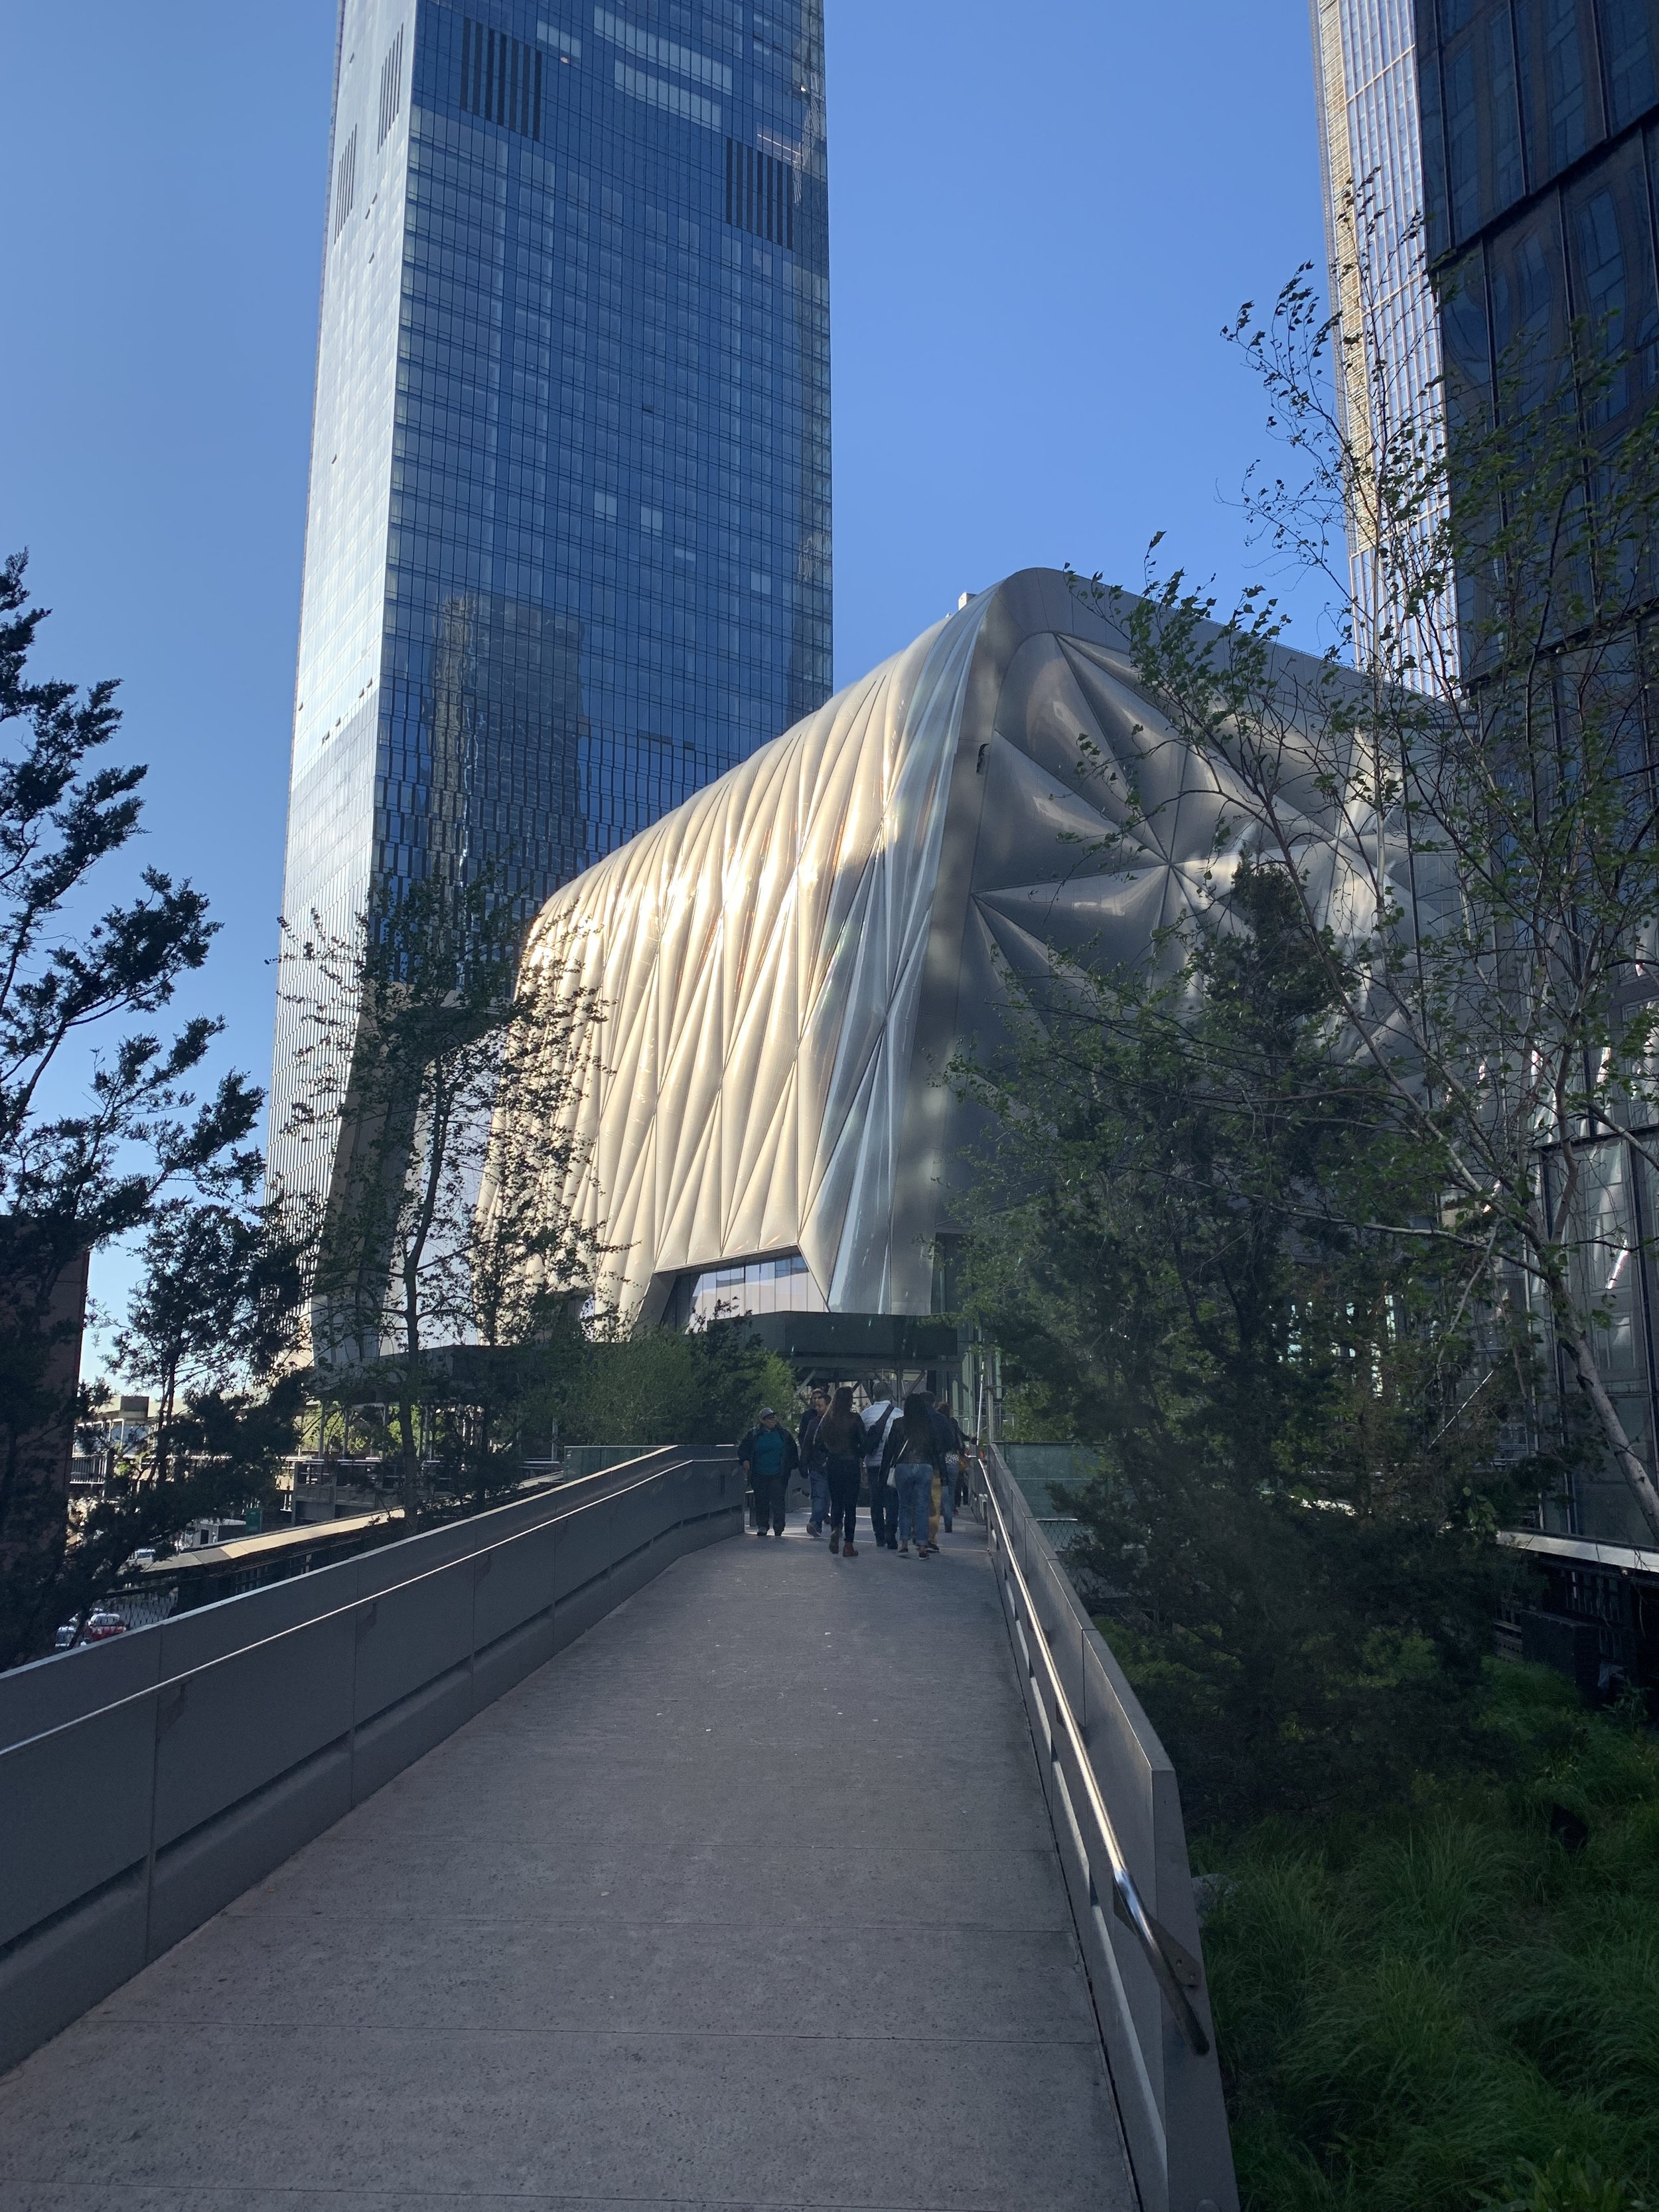 Just up the block from the Chelsea galleries is the High Line, which opens up into the futuristic Hudson Yards, here, with a view of the slick new facility, The Shed.